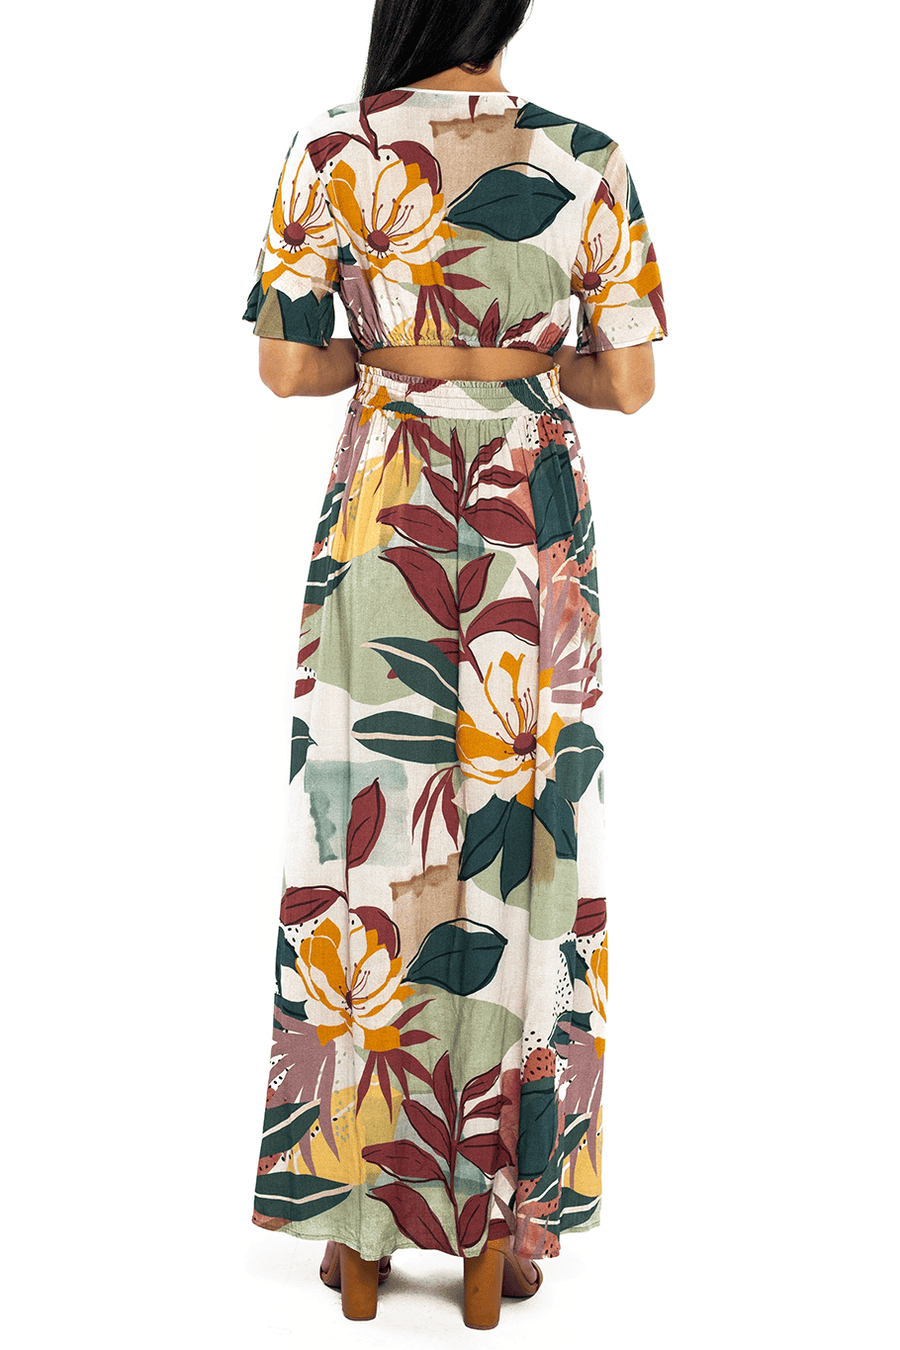 Catalina Cut Out Maxi - Fall Floral